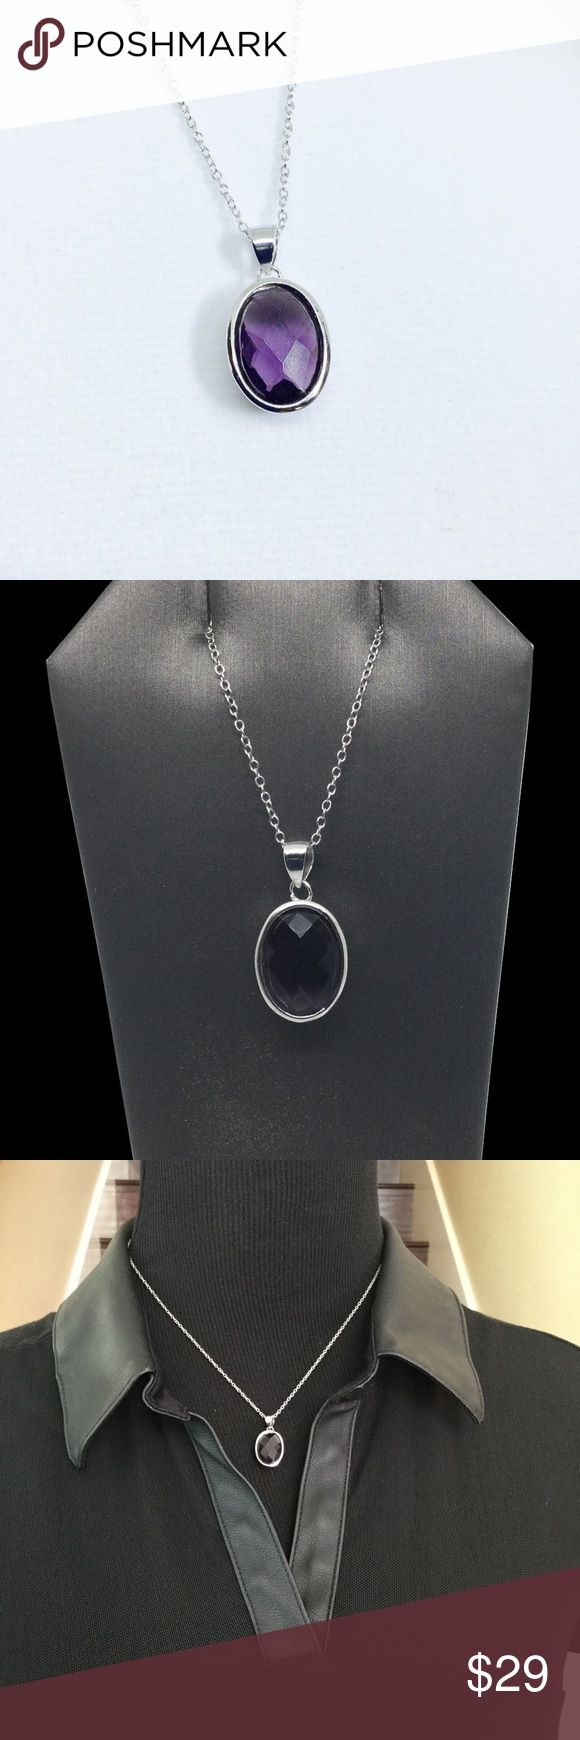 """Sweet Caroline purple Pendant Timeless design Sterling Silver Purple Stone Pendant  Large oval cubic Zirconia on bezel setting  Comes with Sterling silver 18"""" rolo chain has a easy to put on  lobster clasp   Look also for the matching earrings, buy the set for $39 total Jewelry Necklaces"""